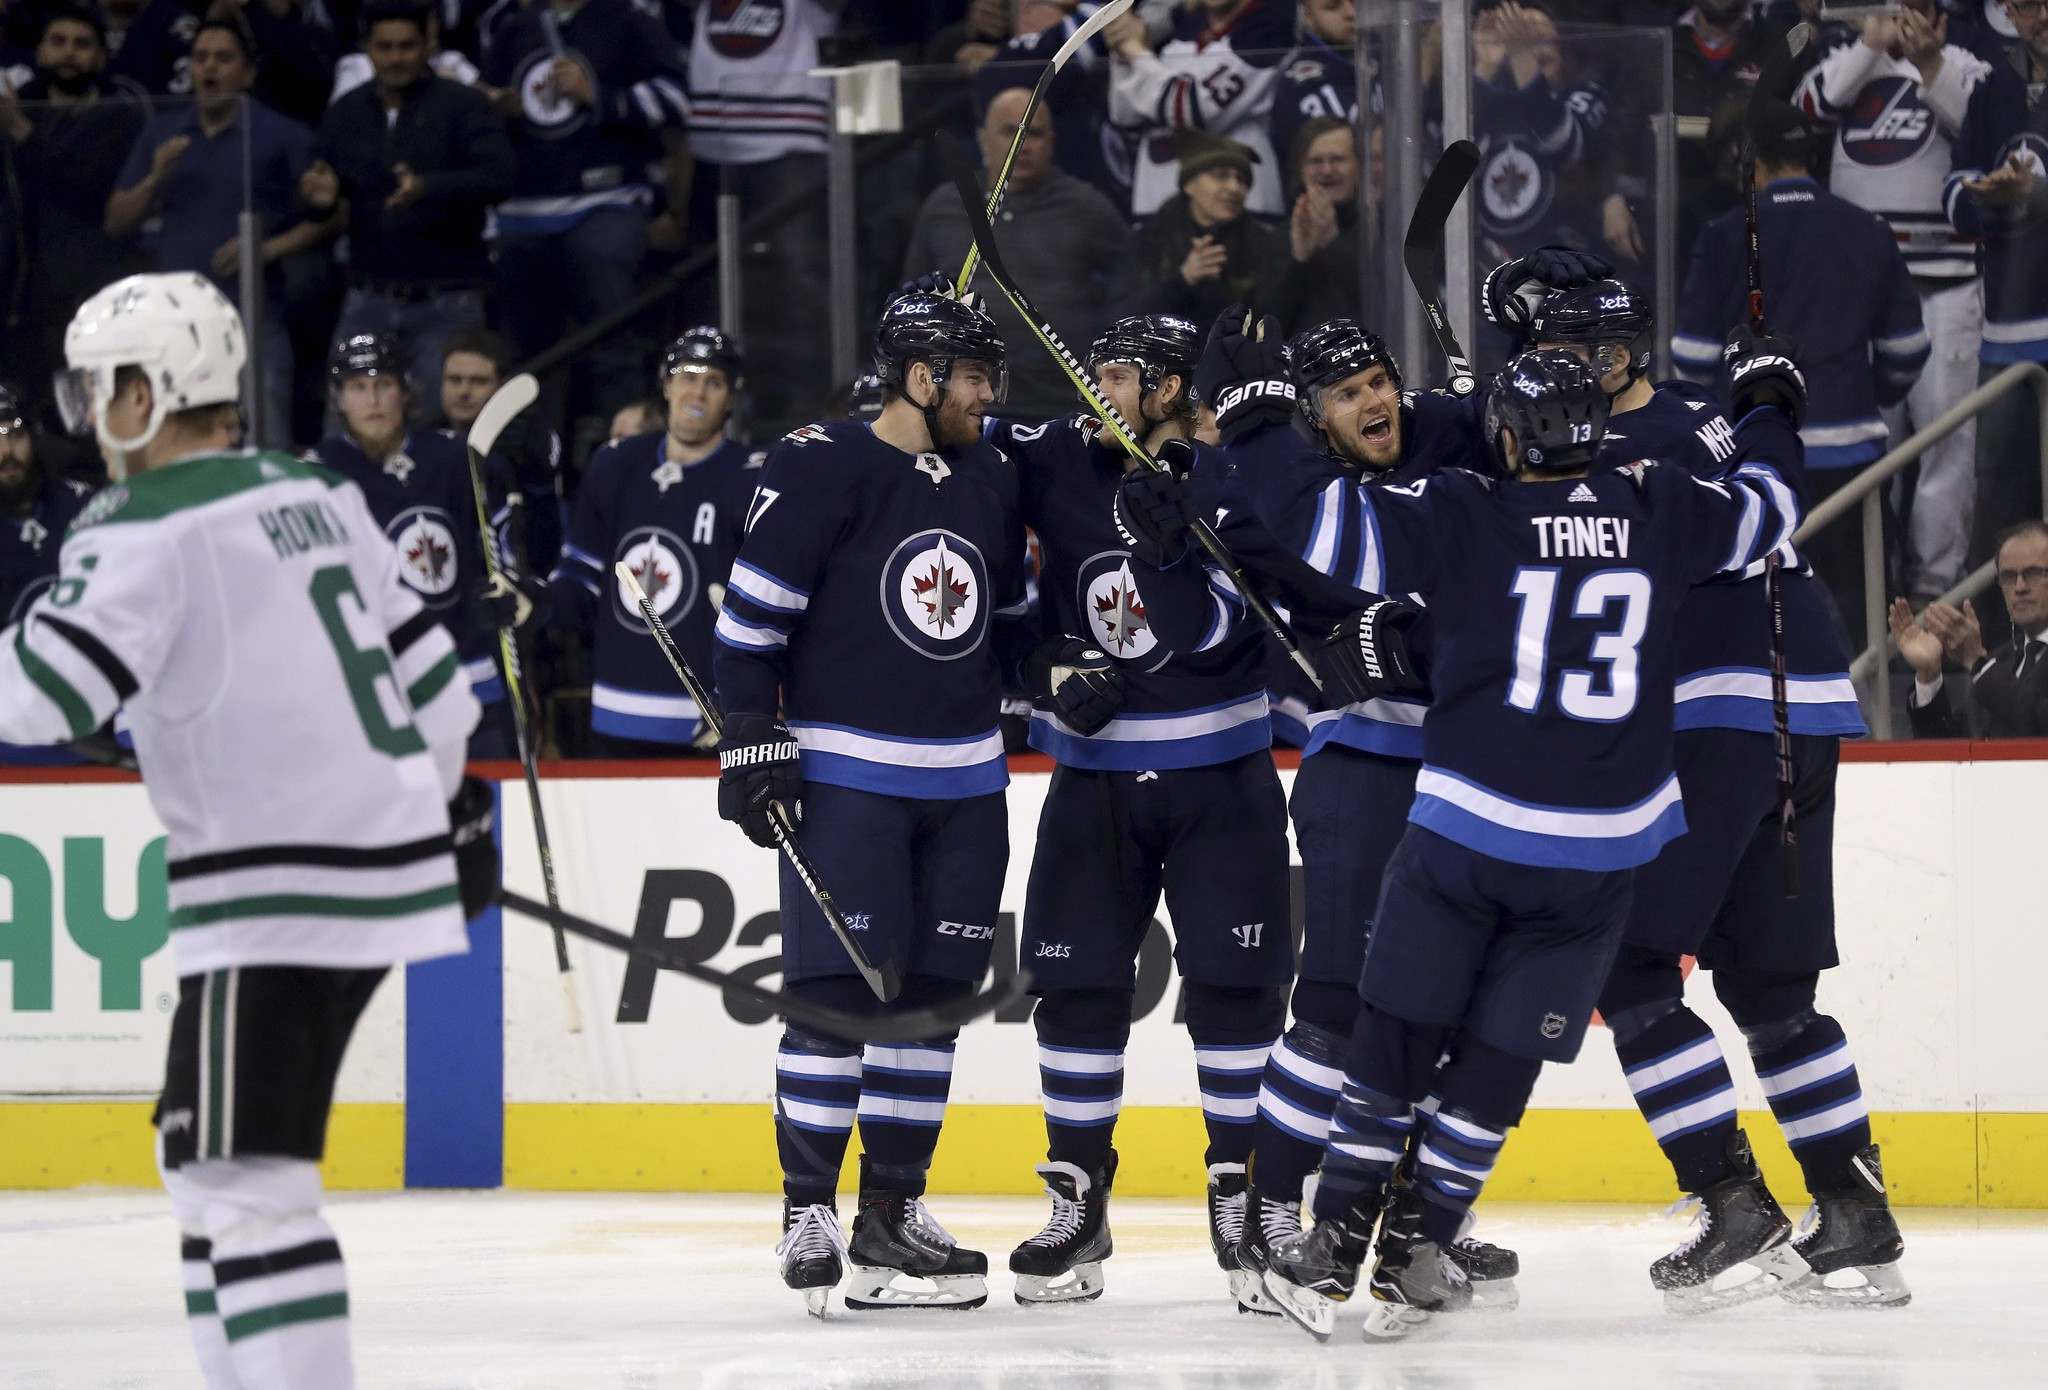 TREVOR HAGAN / THE CANADIAN PRESS</p><p>Winnipeg Jets&#39; Adam Lowry (17), Joel Armia (40), Ben Chiarot (7), Brandon Tanev (13) and Tyler Myers (57) celebrate after Chiarot scored during second period NHL hockey action against the Dallas Stars, in Winnipeg, Sunday, March 18, 2018.</p>